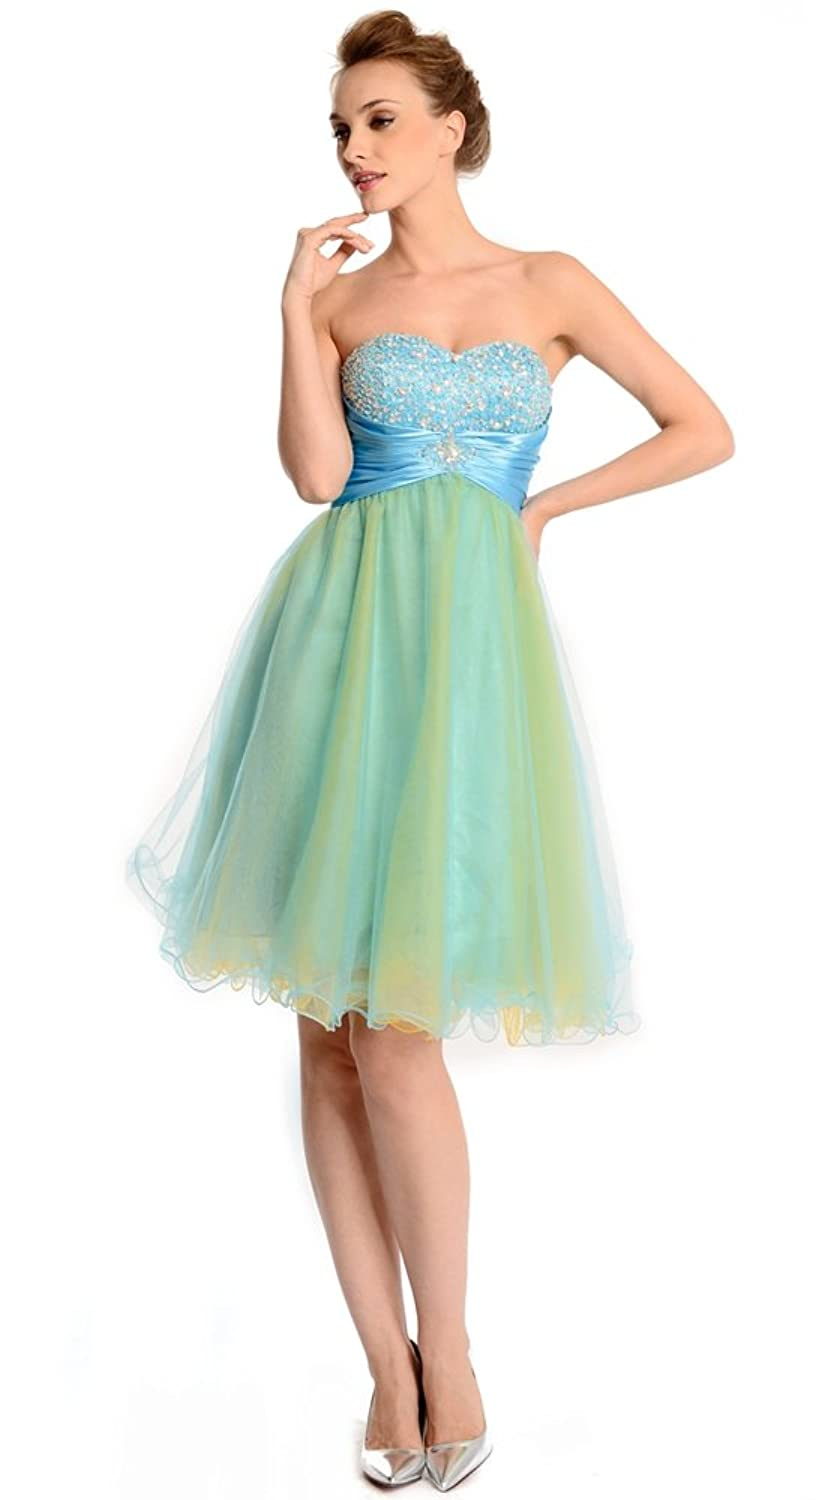 Amadeo Elegant Strapless Sweetheart Beading Short Blue Homecoming Dresses LF048